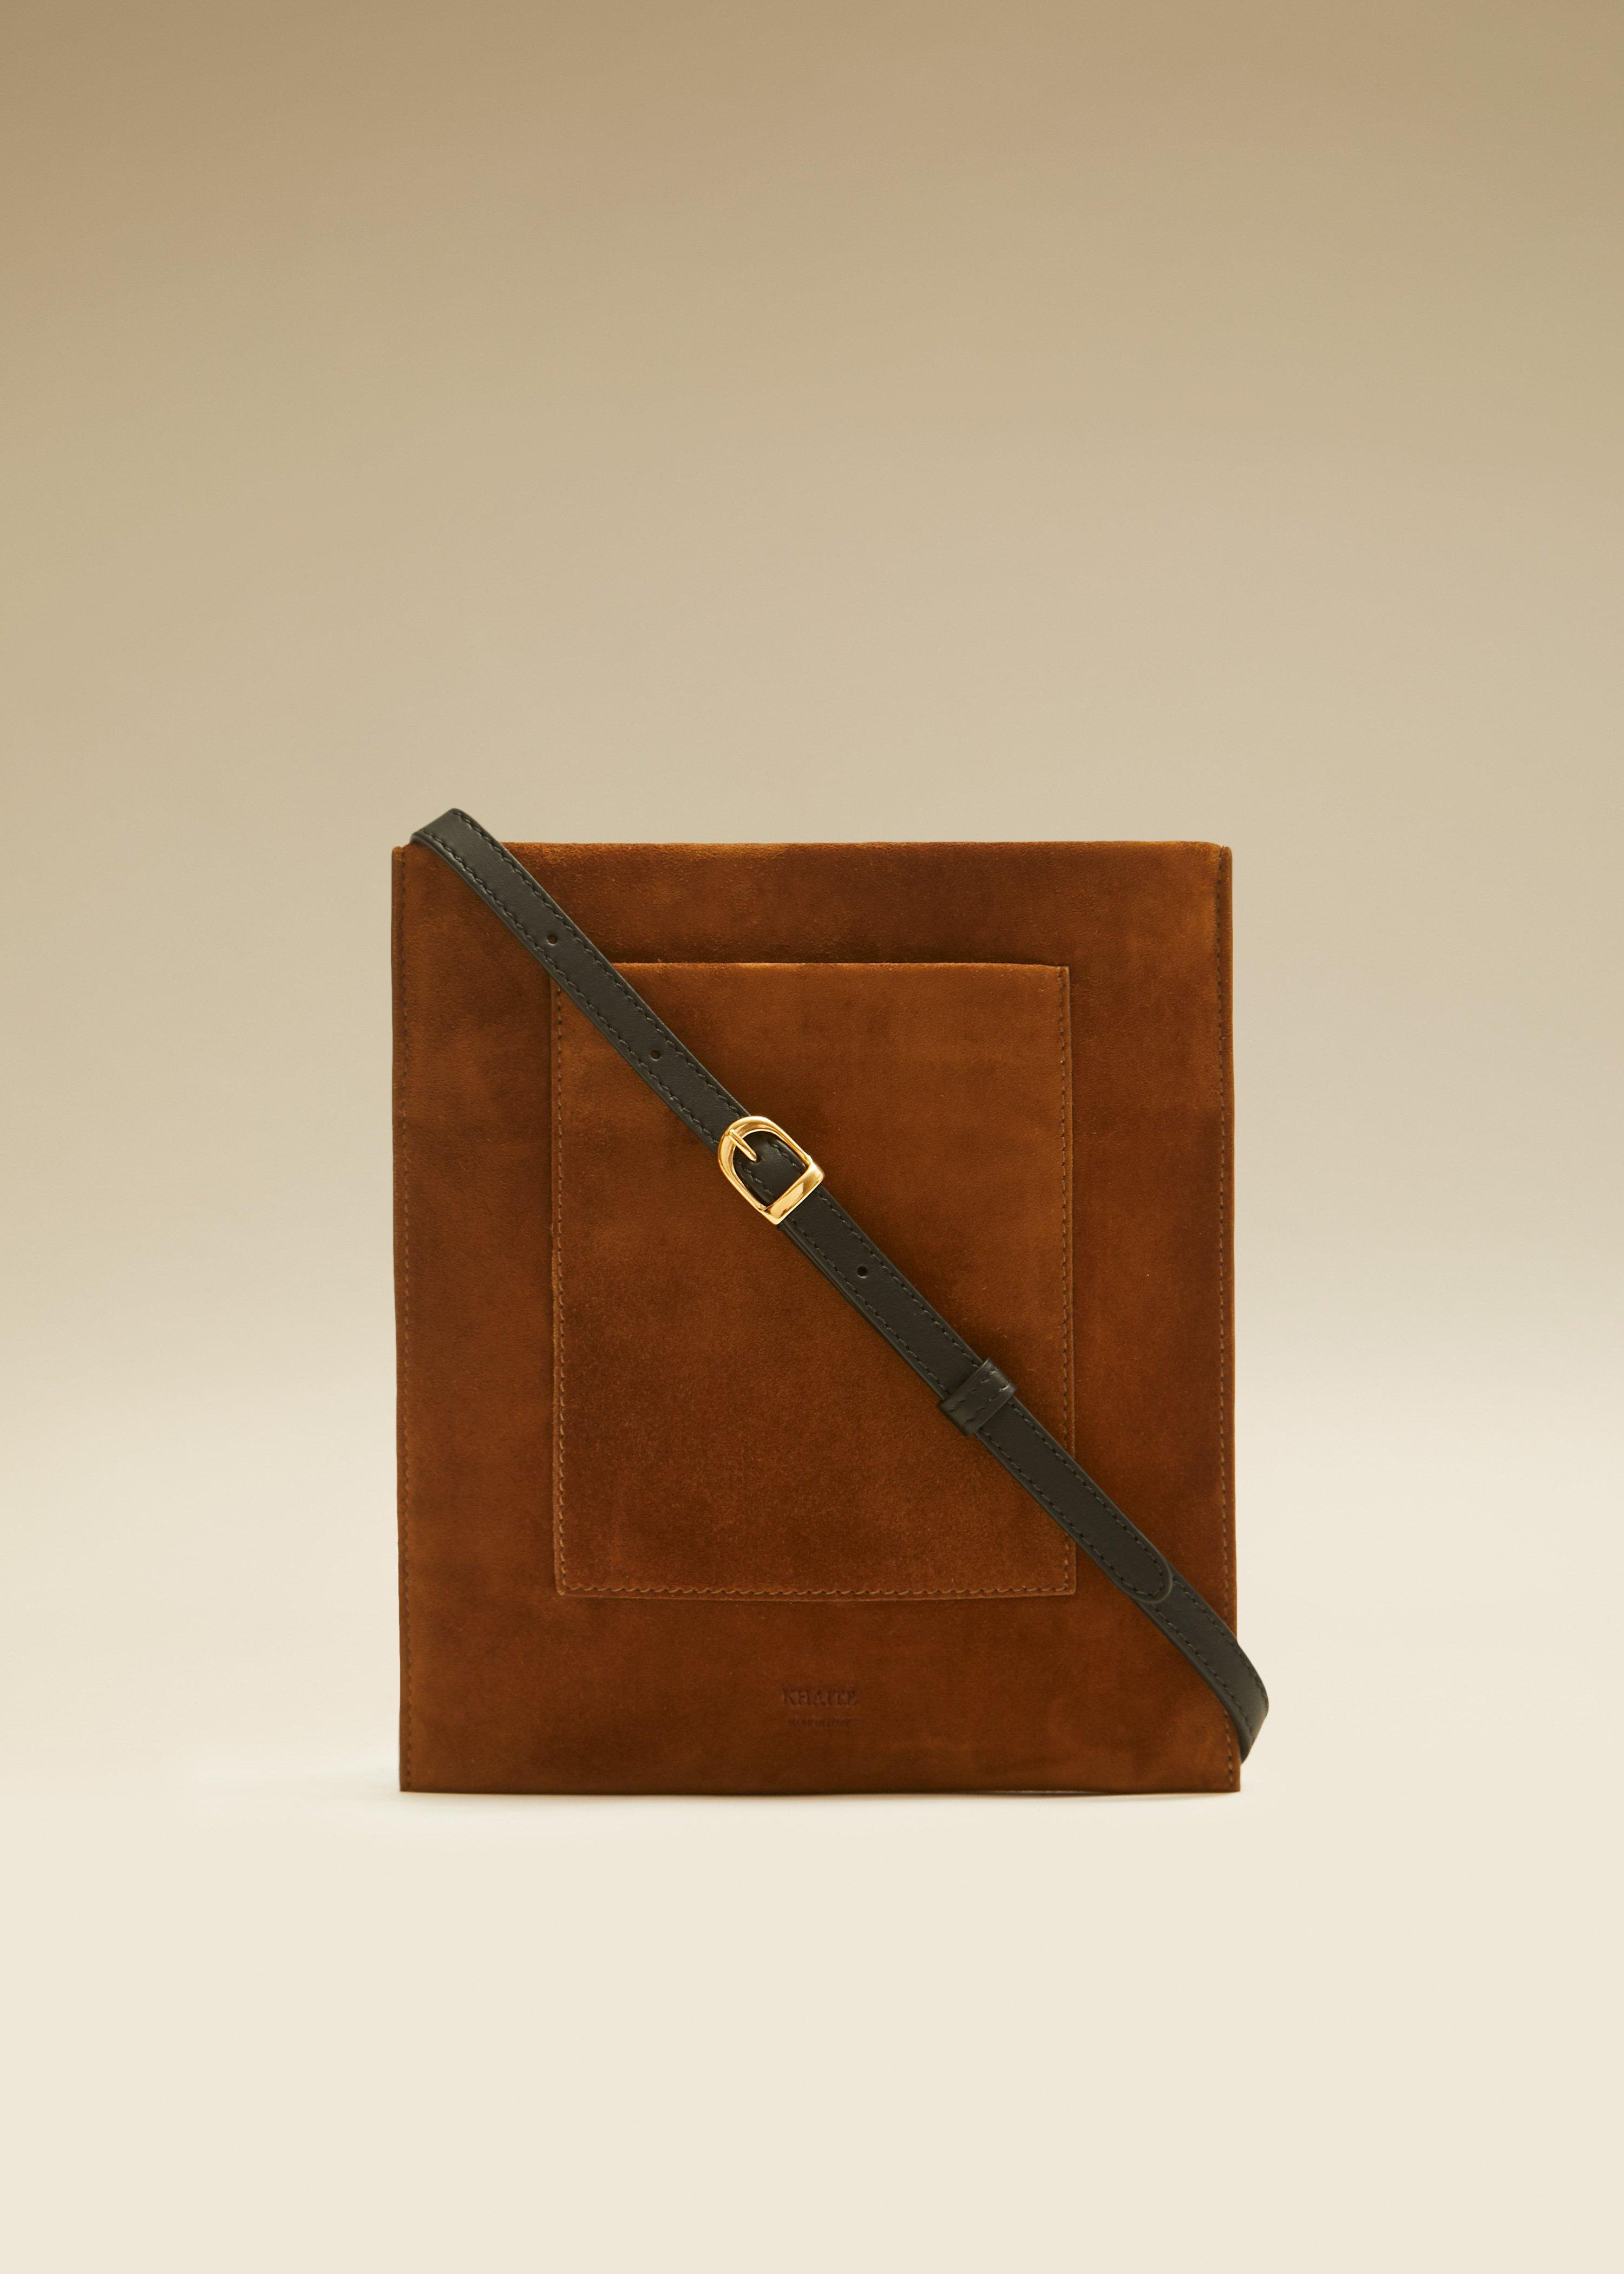 The Lillian Pocket Pouch in Caramel Suede